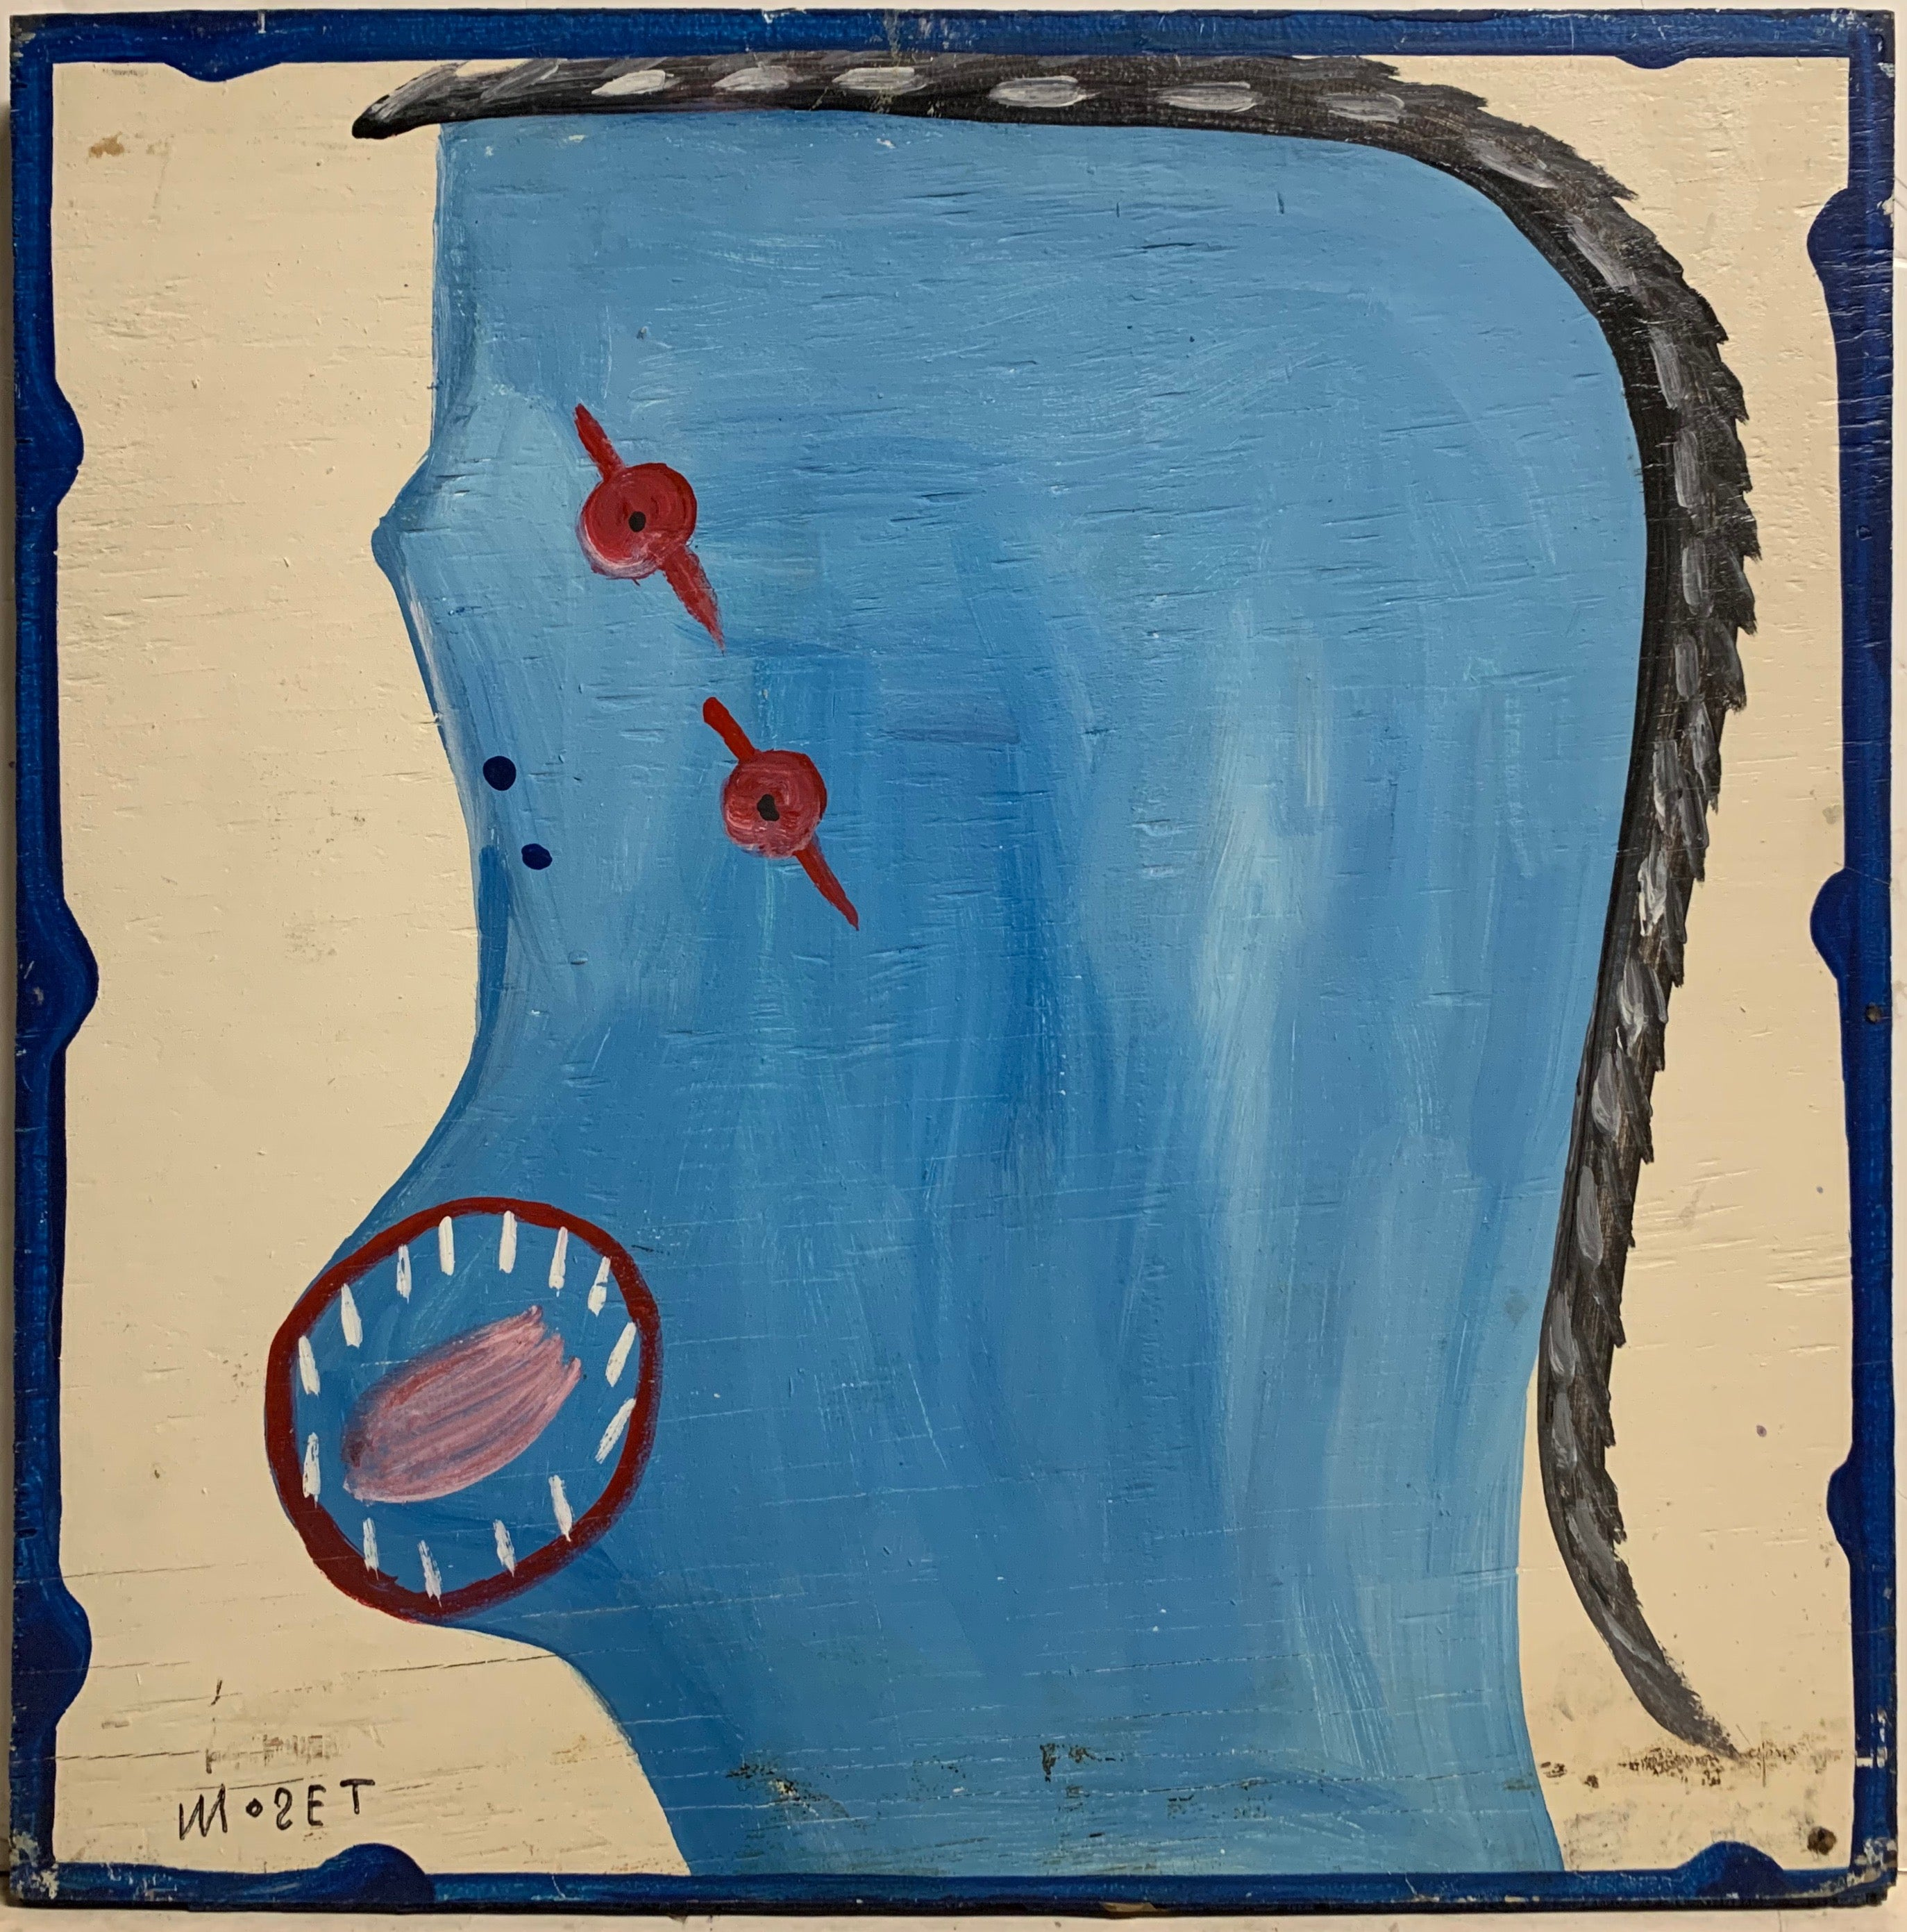 Blue and Red Self Portrait Mose Tolliver Painting